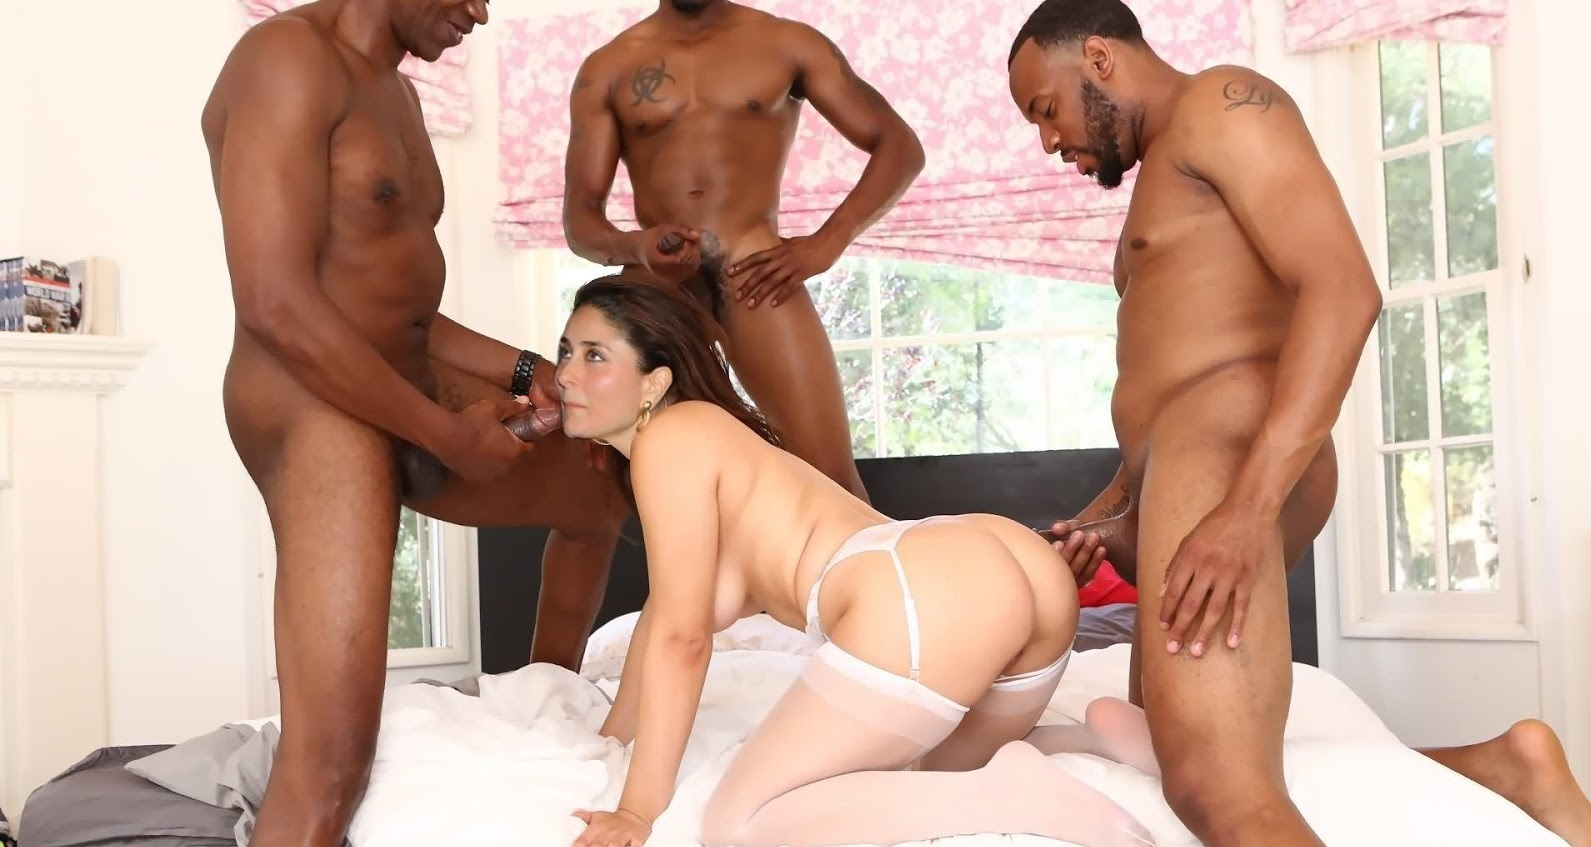 Group Sex Video Pictures 12